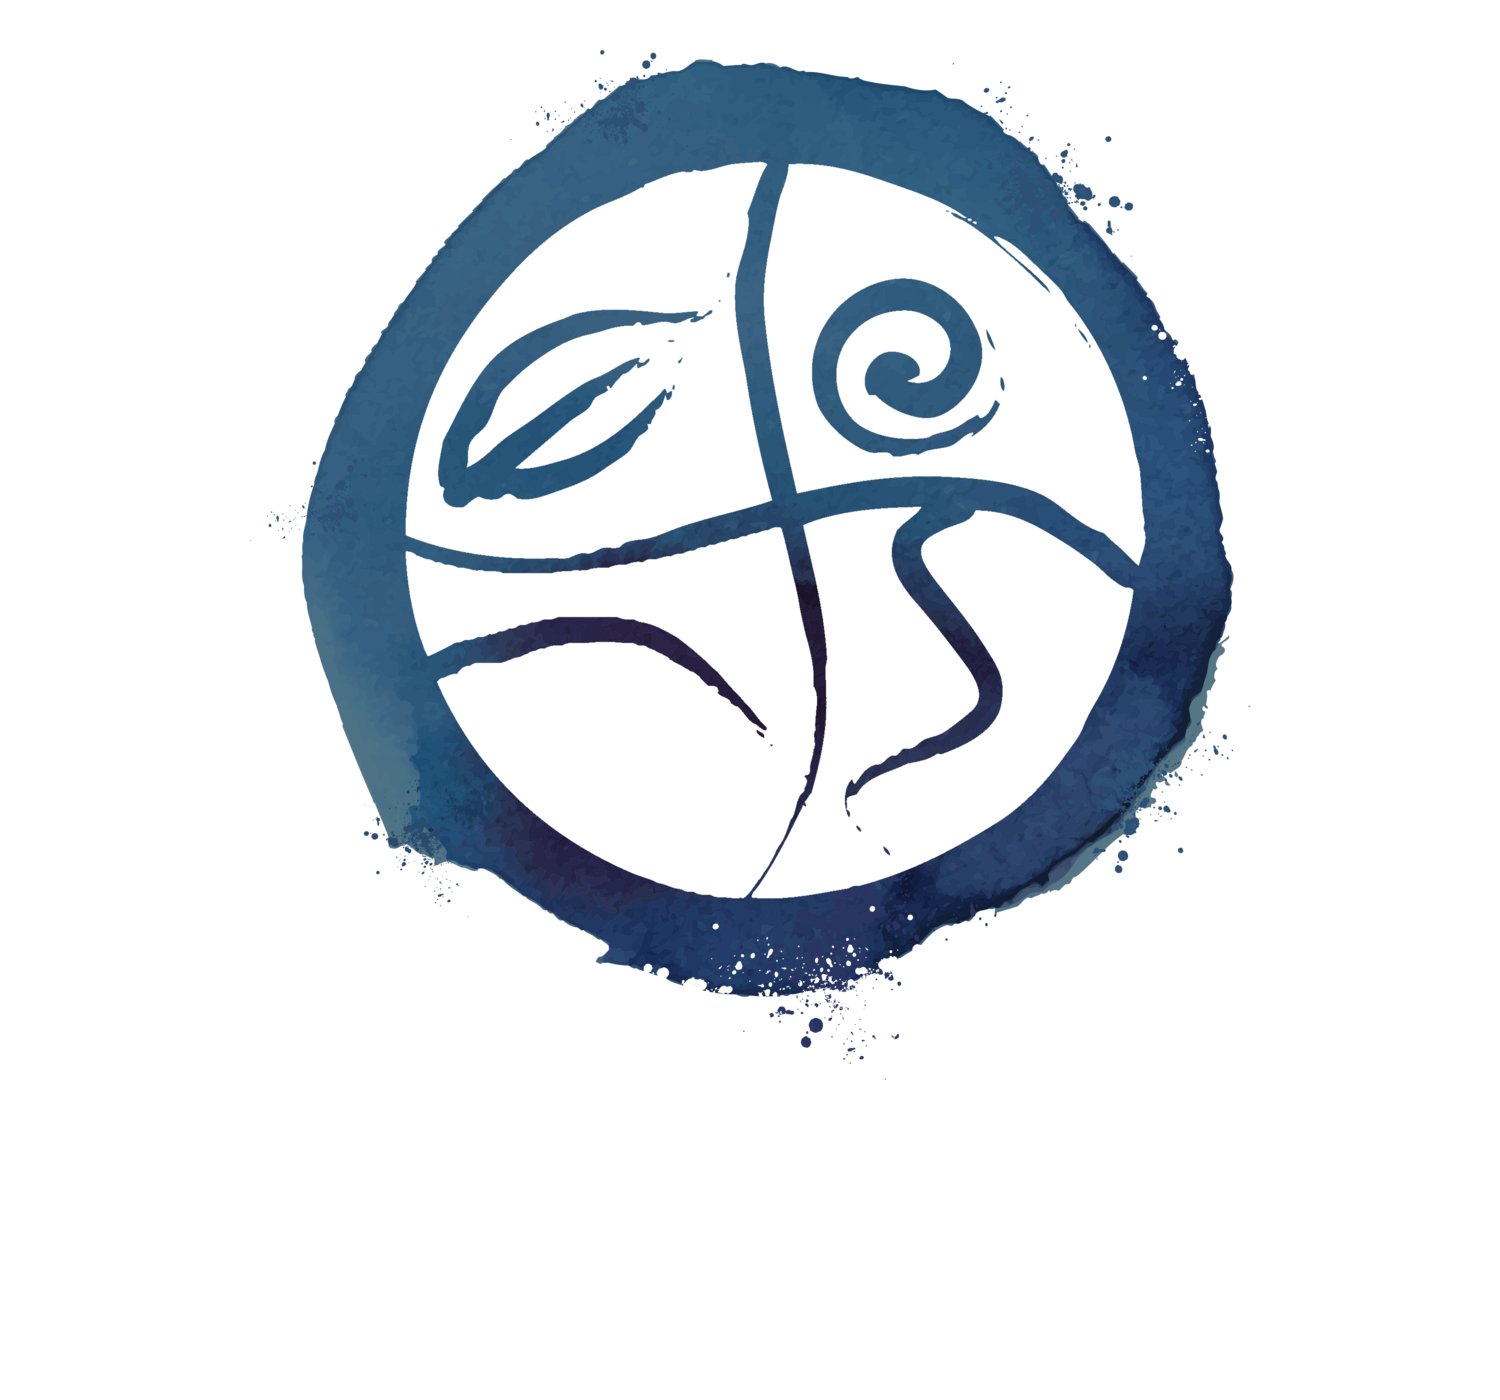 Topanga Mountain School